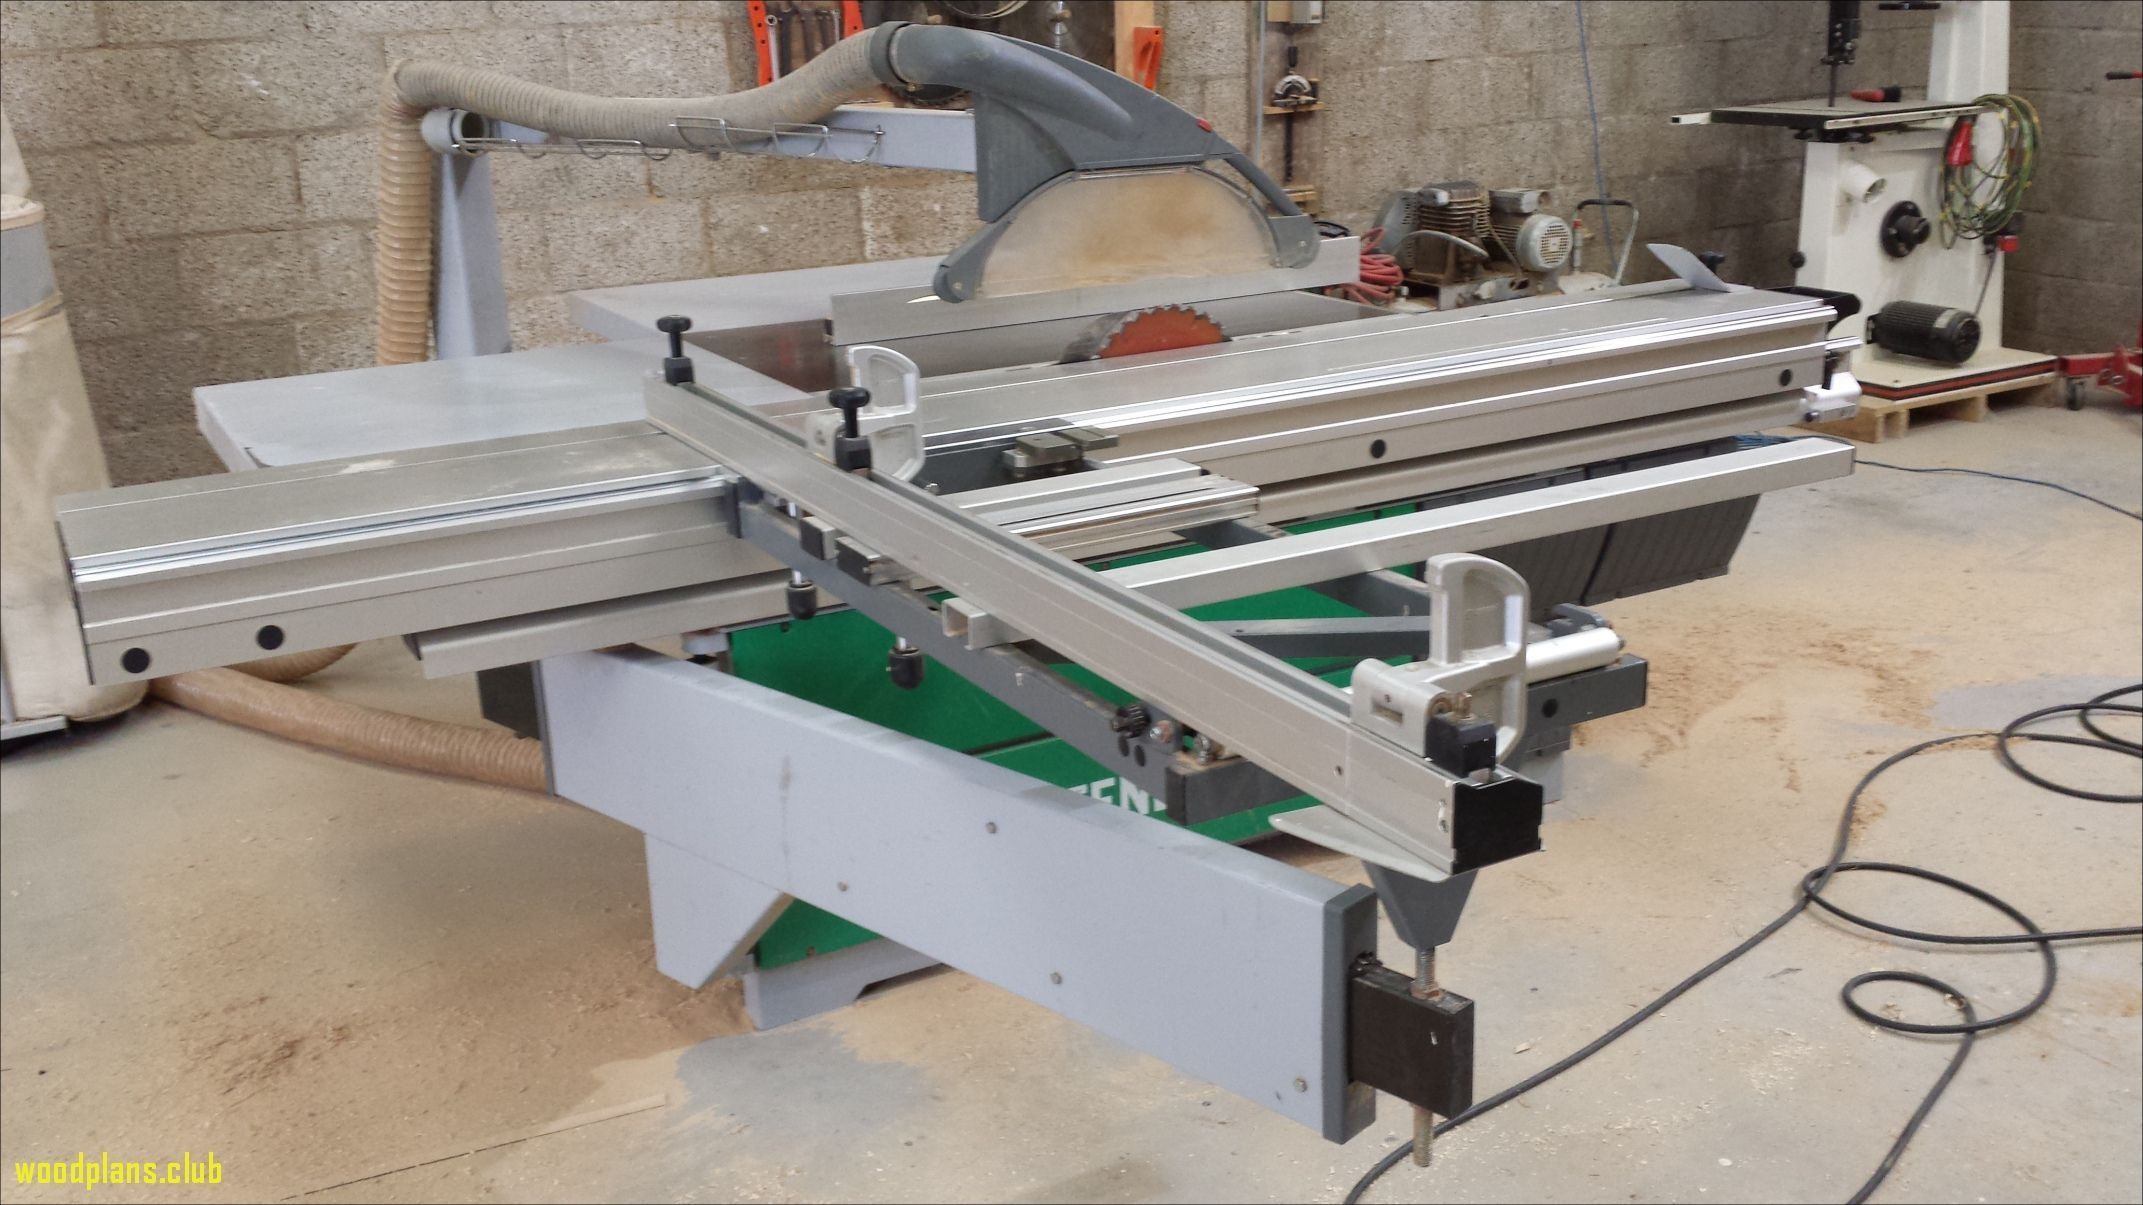 Used Woodworking Machines For Sale In South Africa Woodworking Machine Woodworking Blueprints Used Woodworking Tools